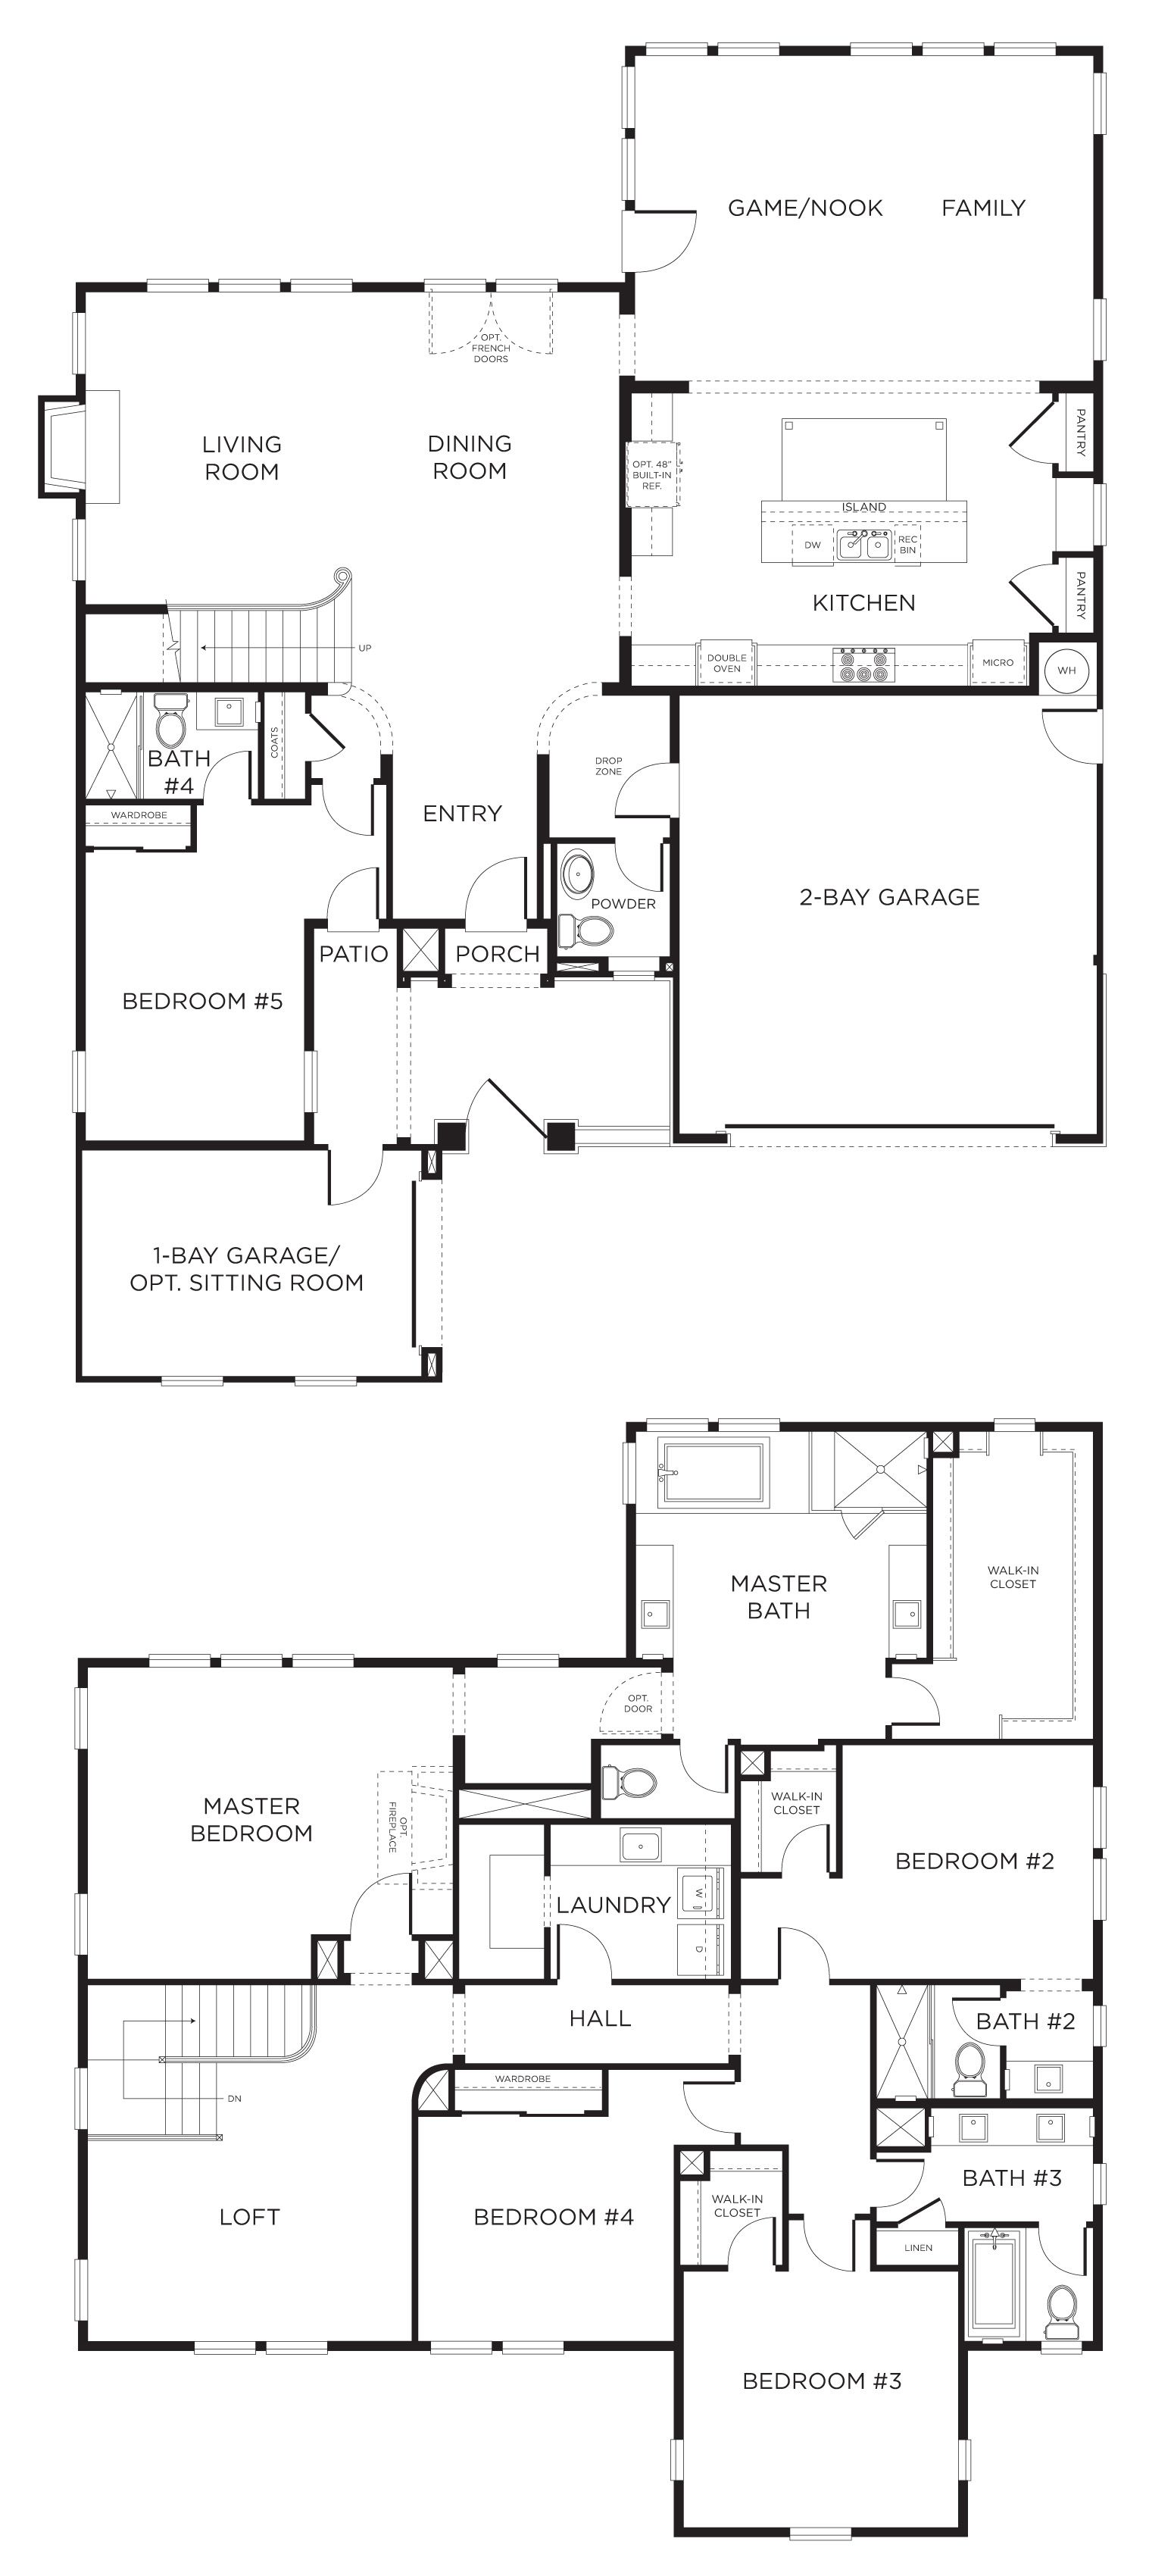 Bedroom Floor Layout 5 Bedroom House Plan I 39d Move The 5th Room Upstairs And